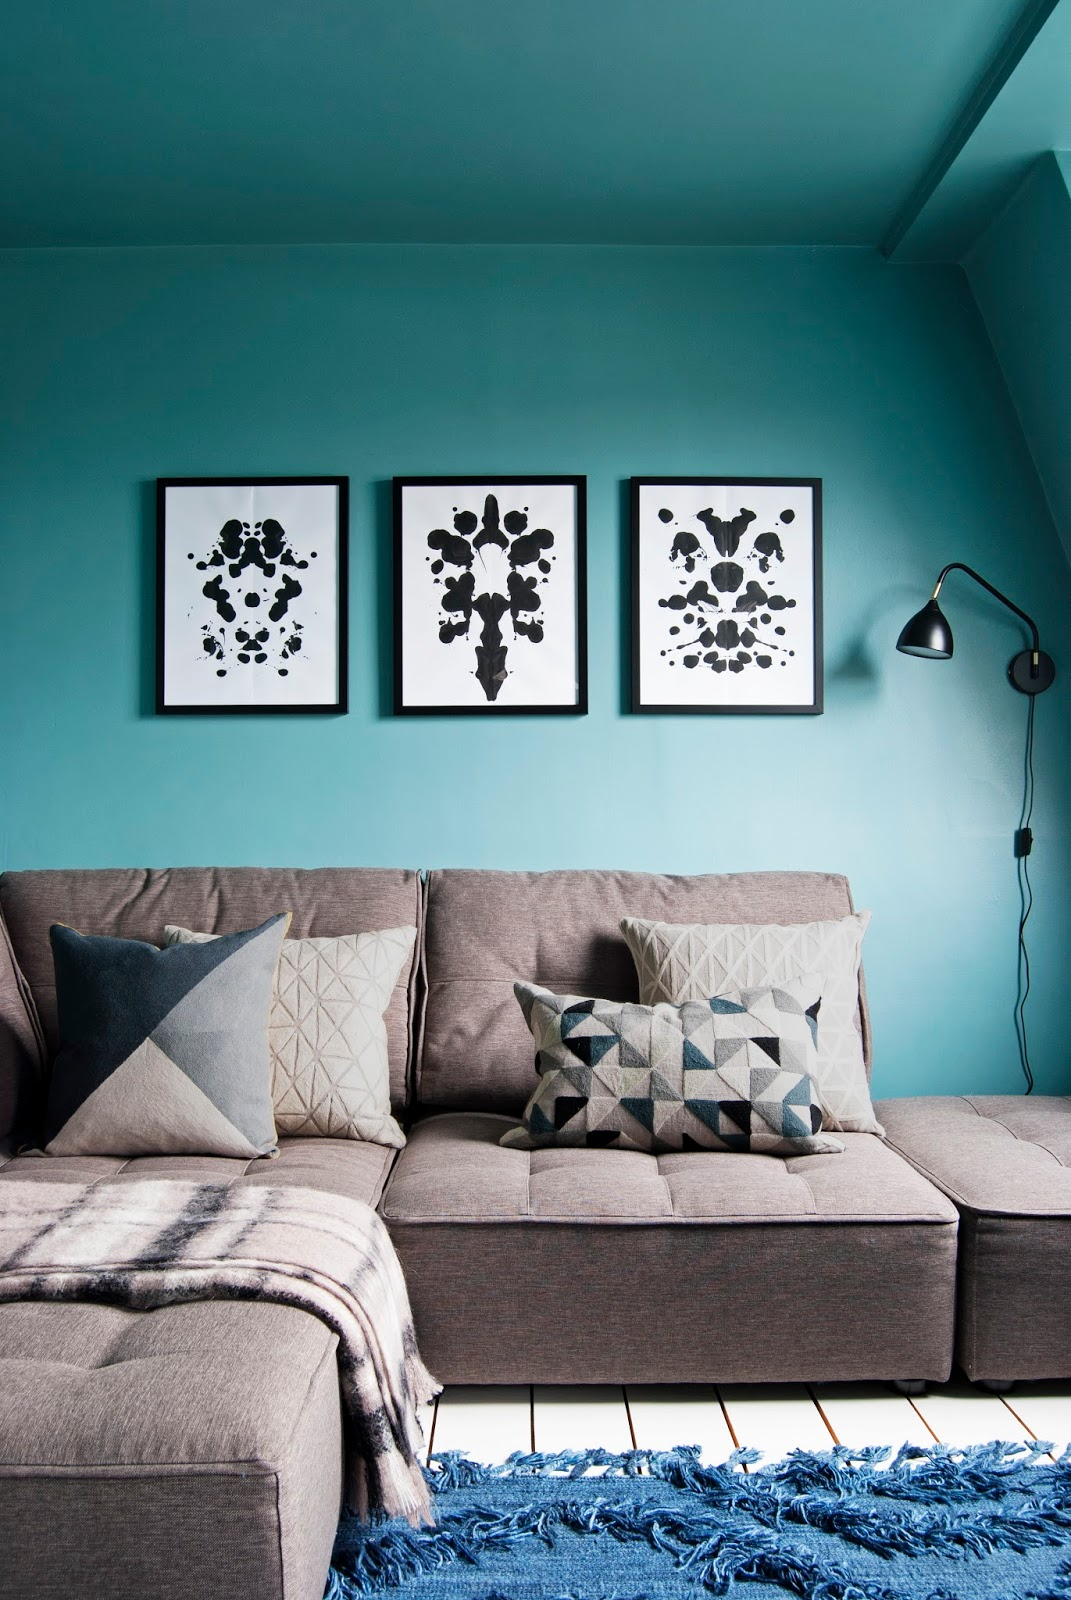 Amara Shoppable Home Inspiration Pages - French For Pineapple Blog - teal blue living tv room with brown sofa and geometric cushions and blue rug